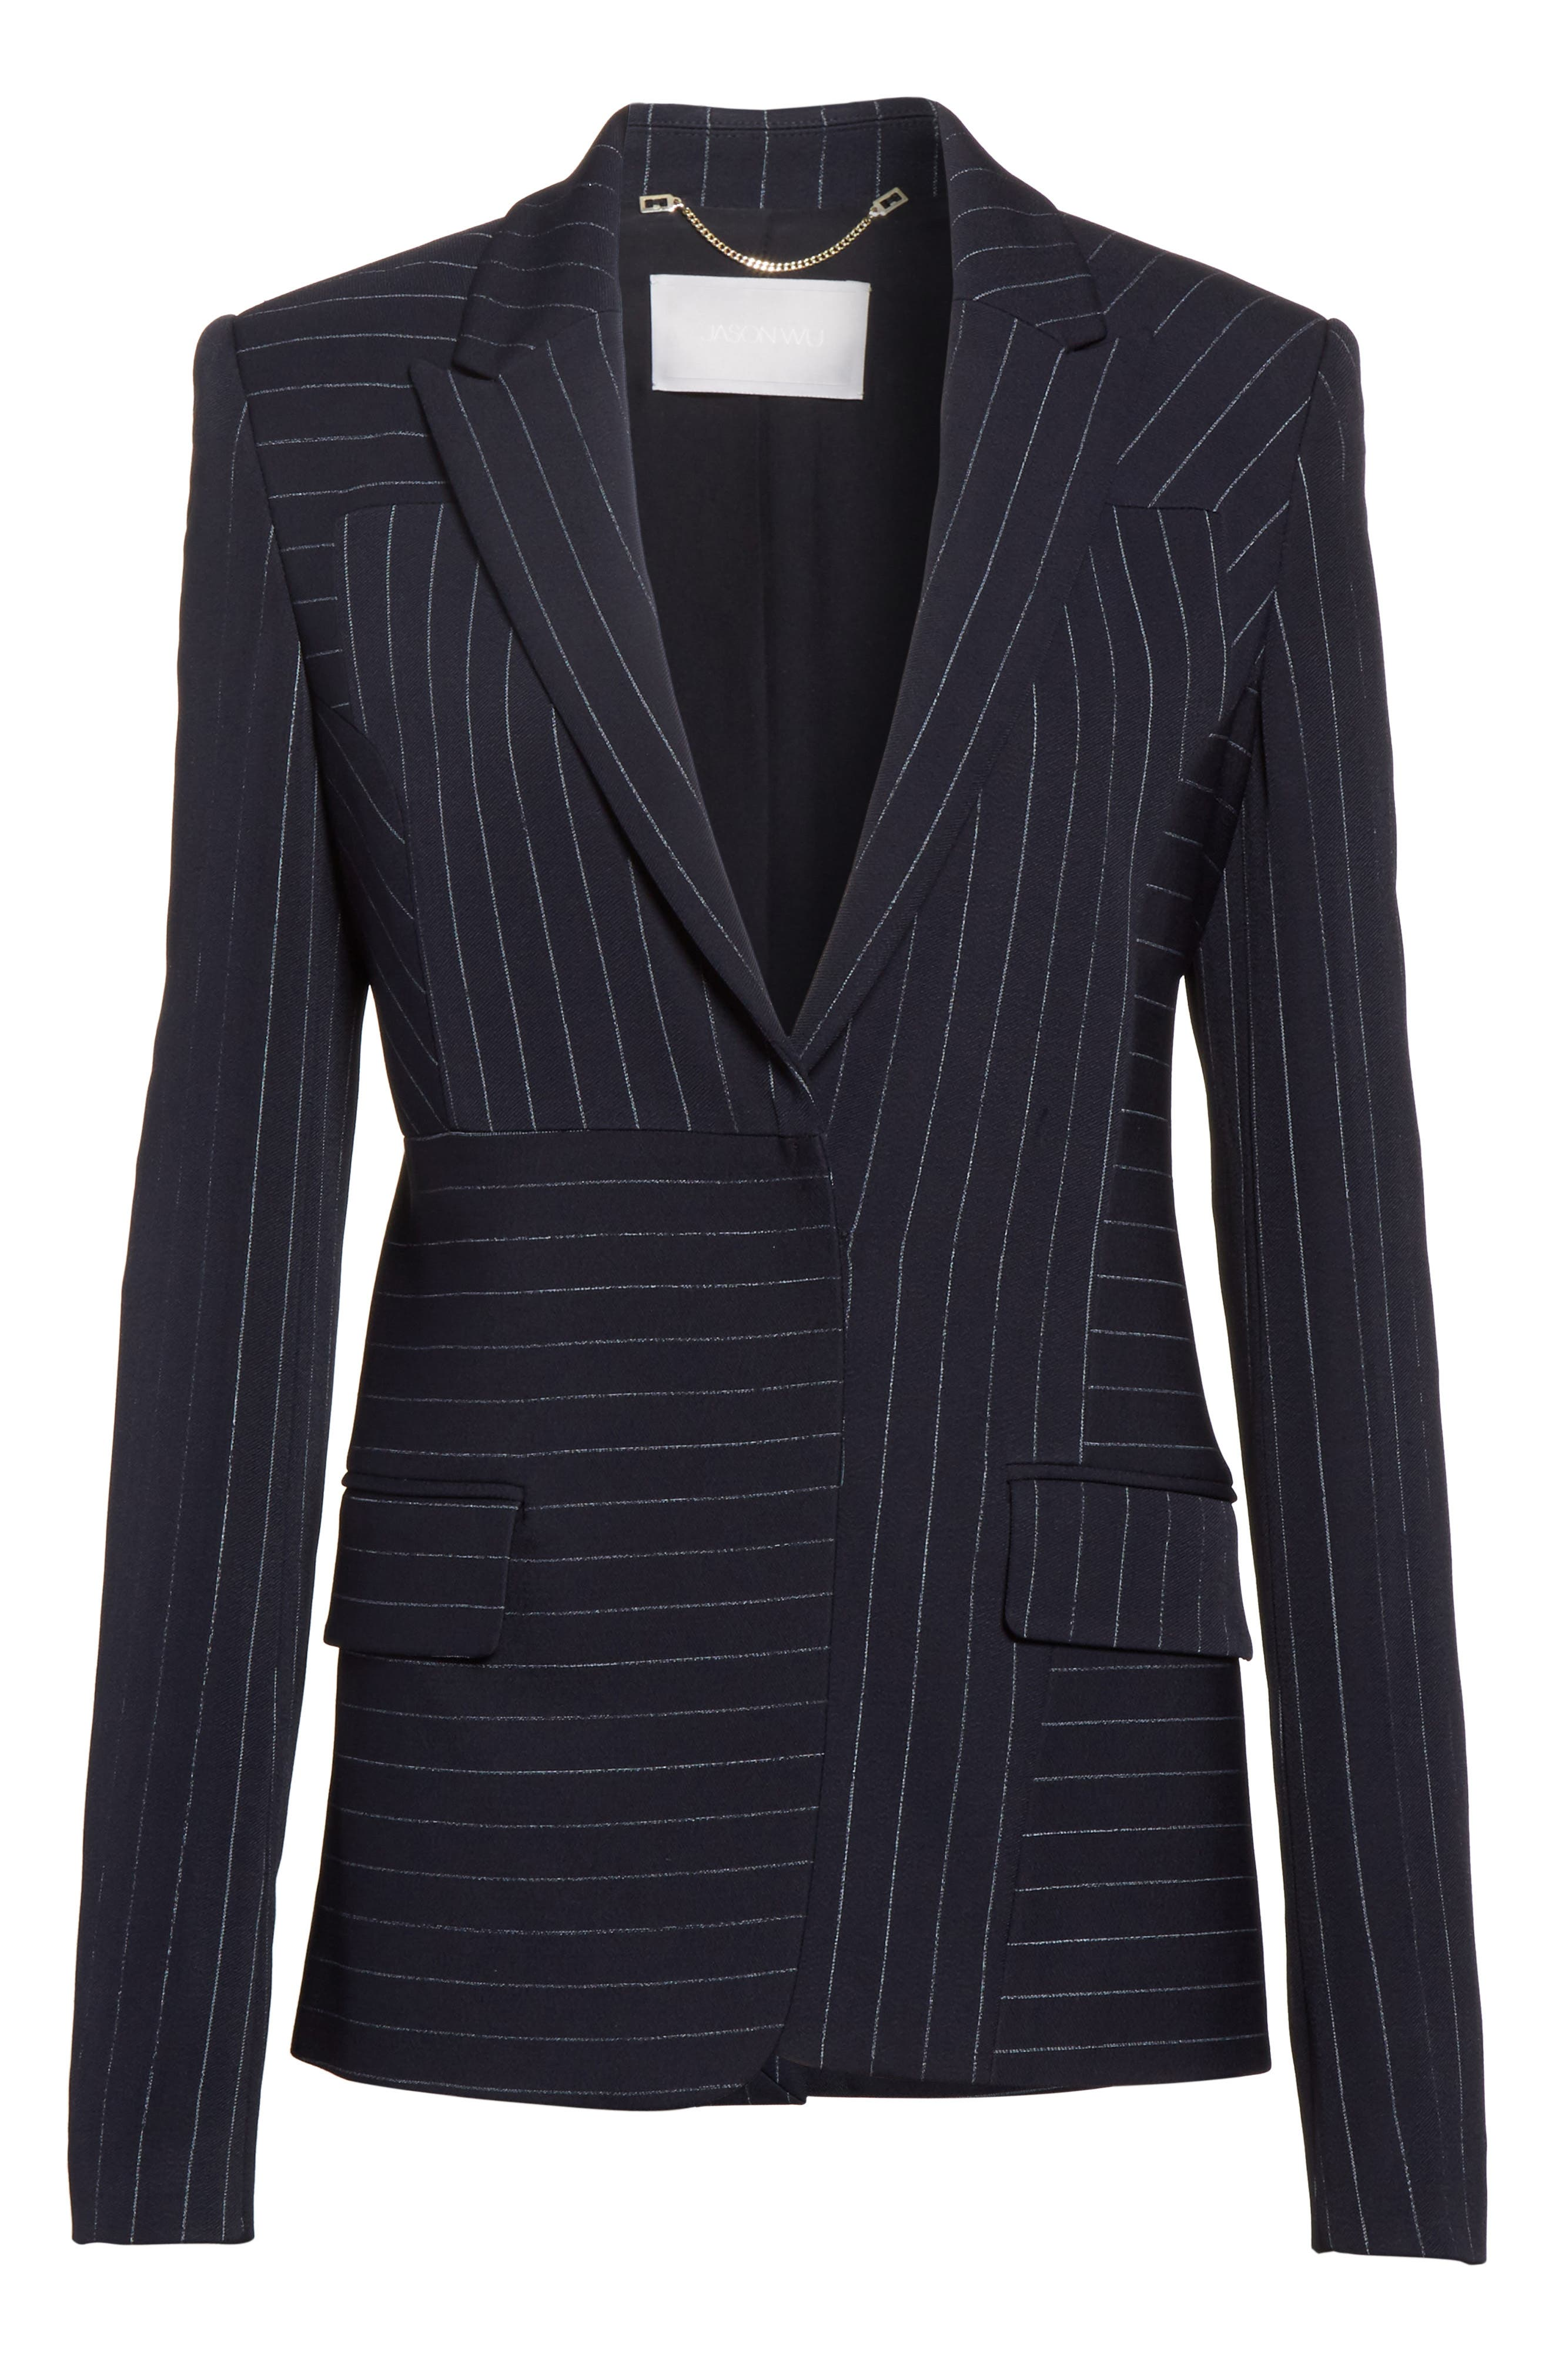 Pinstripe Stretch Jacket,                             Alternate thumbnail 4, color,                             Black/ Chalk